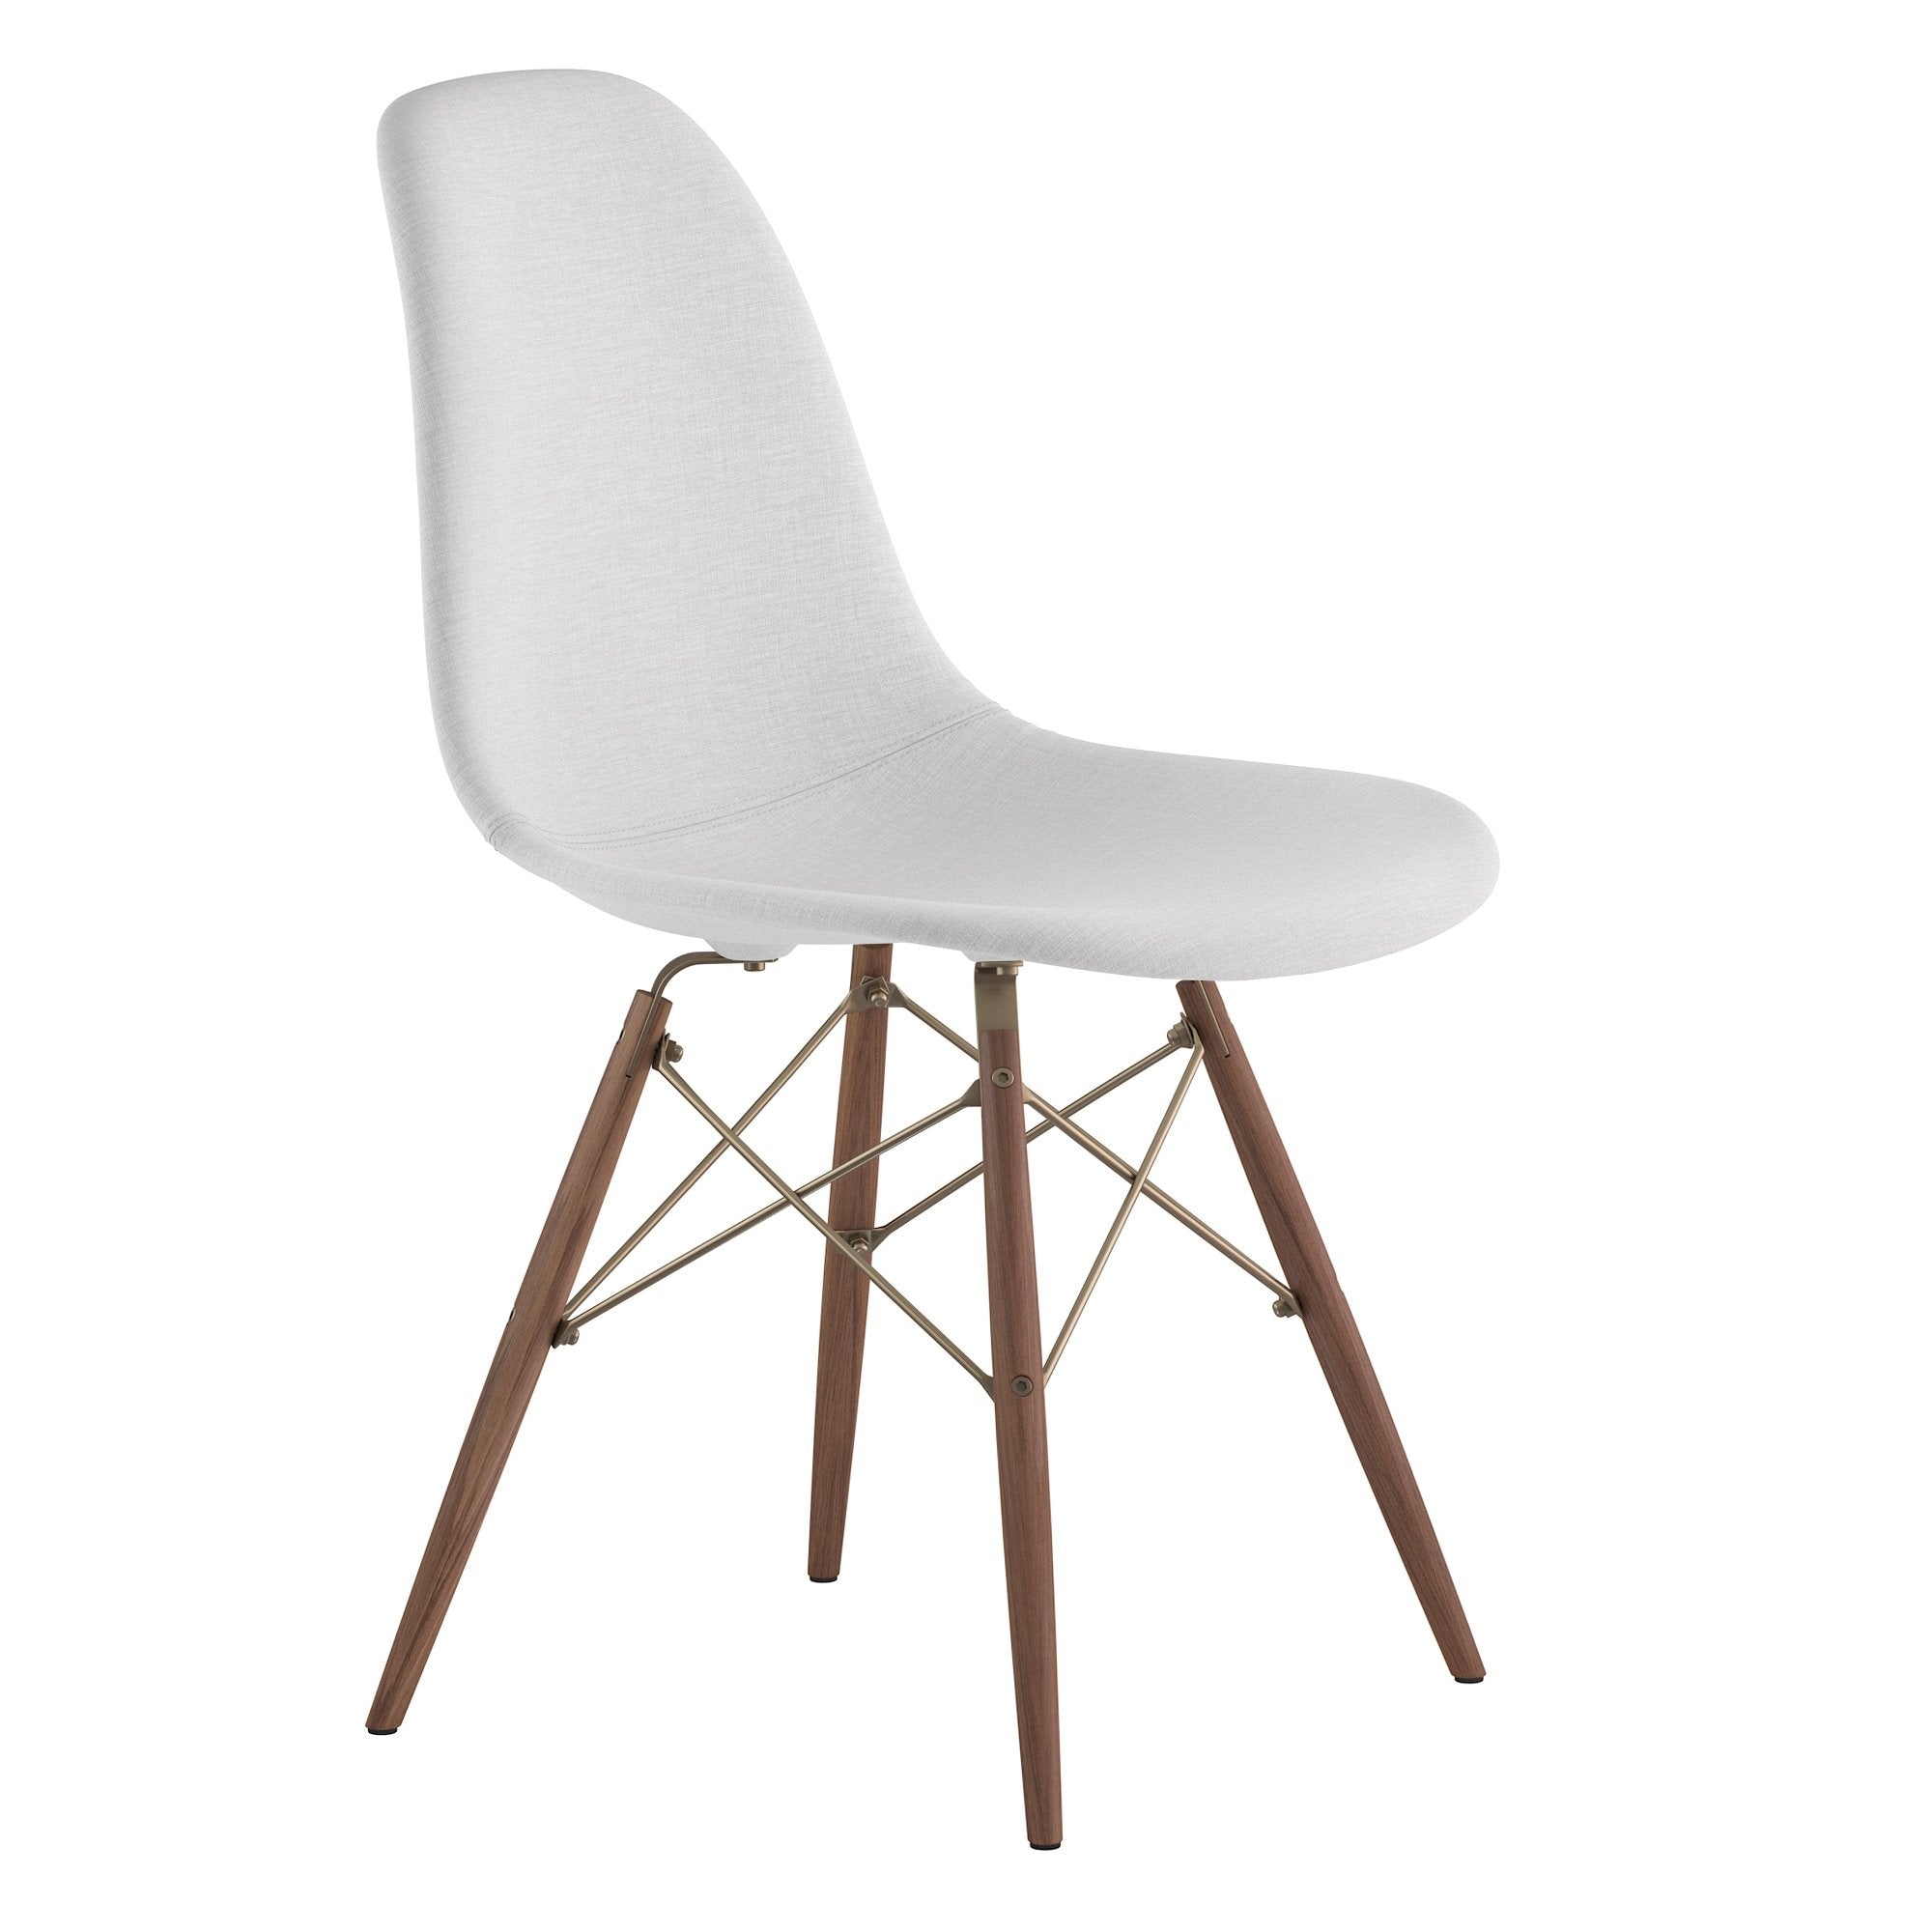 Attrayant Mid Century Dowel Side Chair In Glacier White Fabric With Walnut Wood Legs Accent  Chairs ...